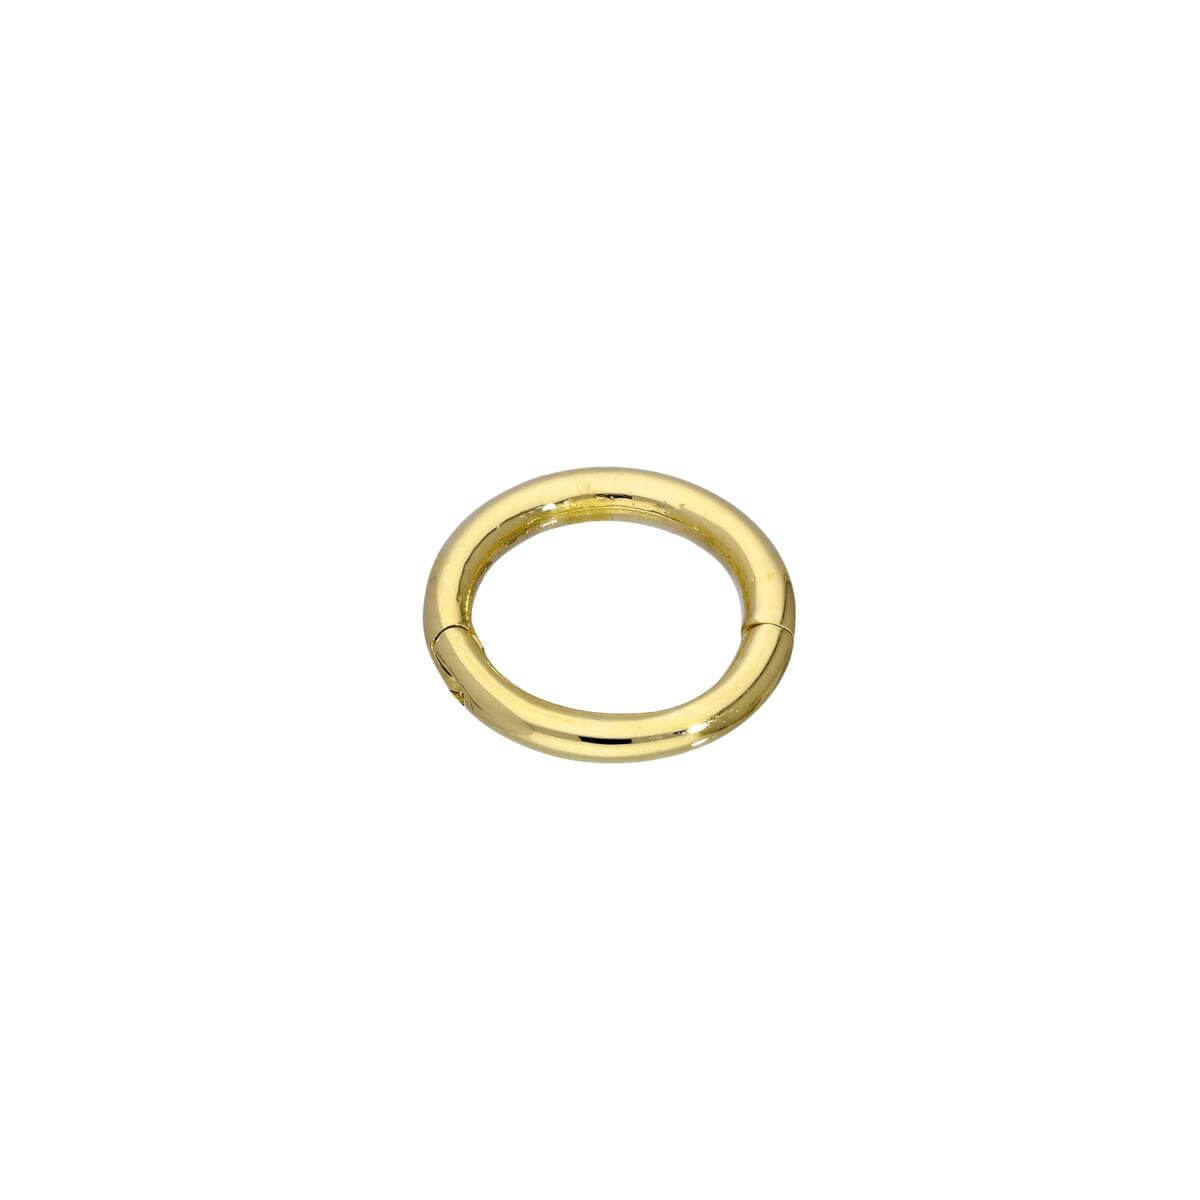 9ct Gold 16Ga Nose Ring